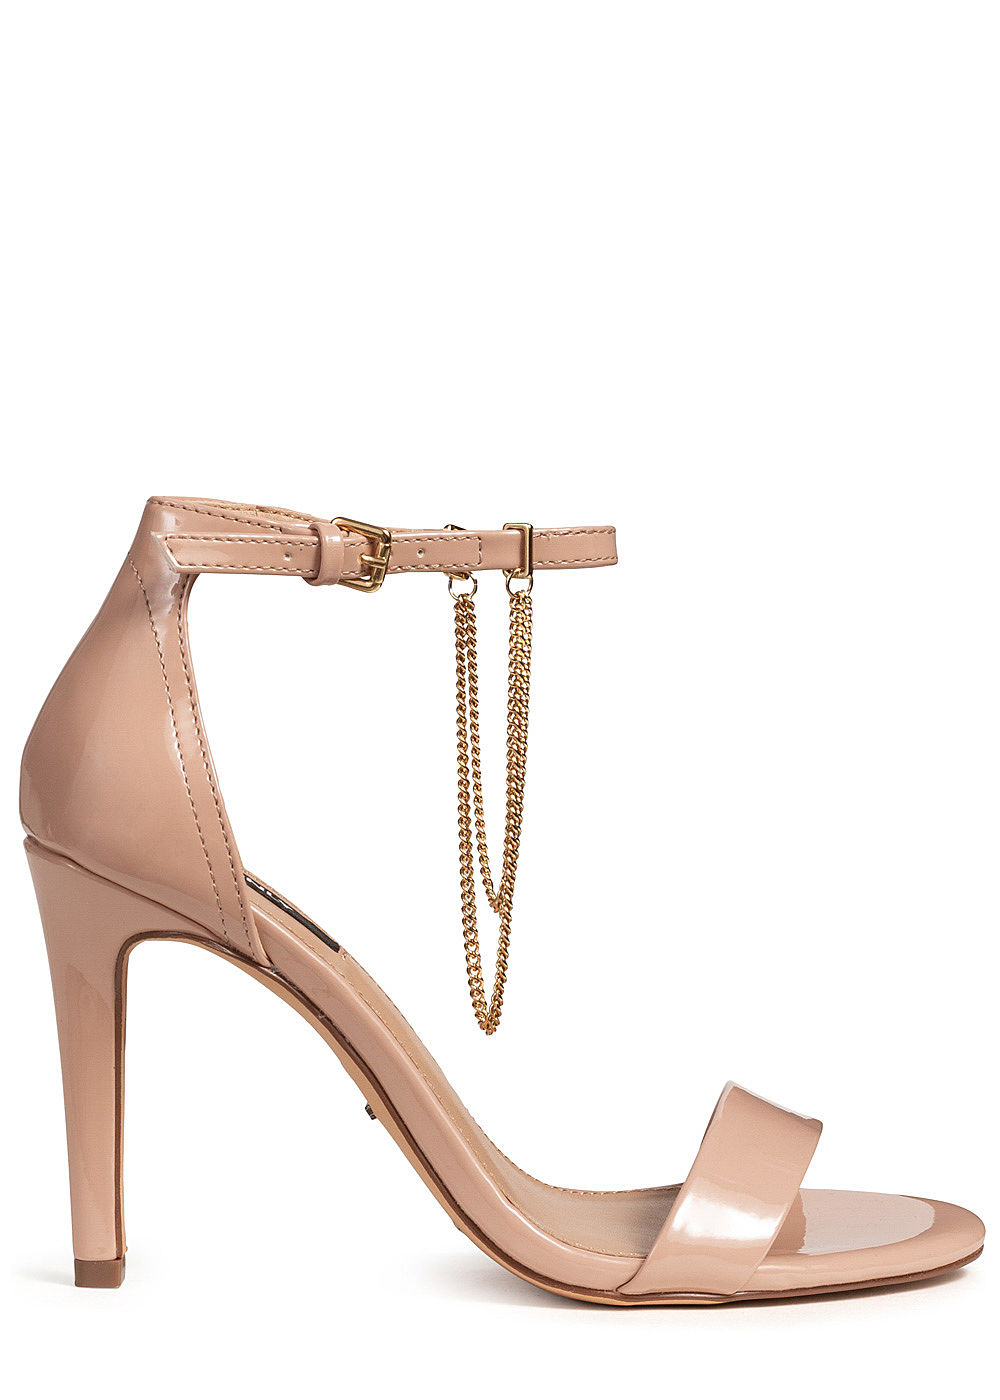 ONLY Damen Ankle Strap Peep Toe Pump nude rosa - Art.-Nr.: 19062581-37-RS